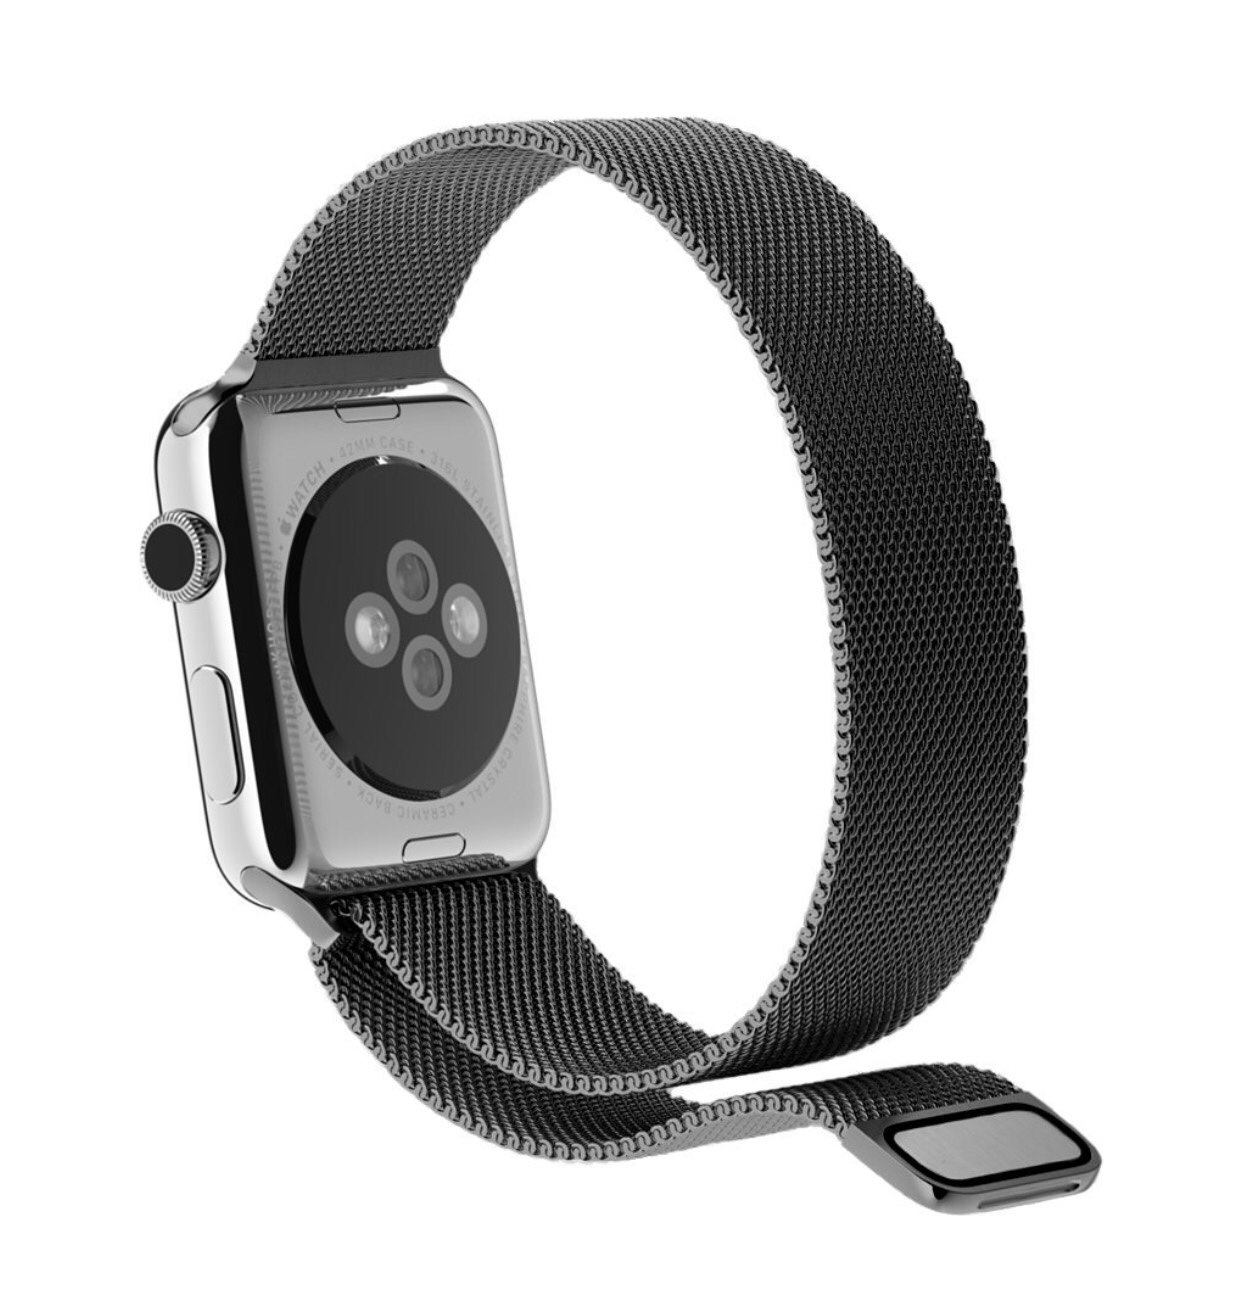 Third Party Apple Watch Straps That Won't Break The Bank